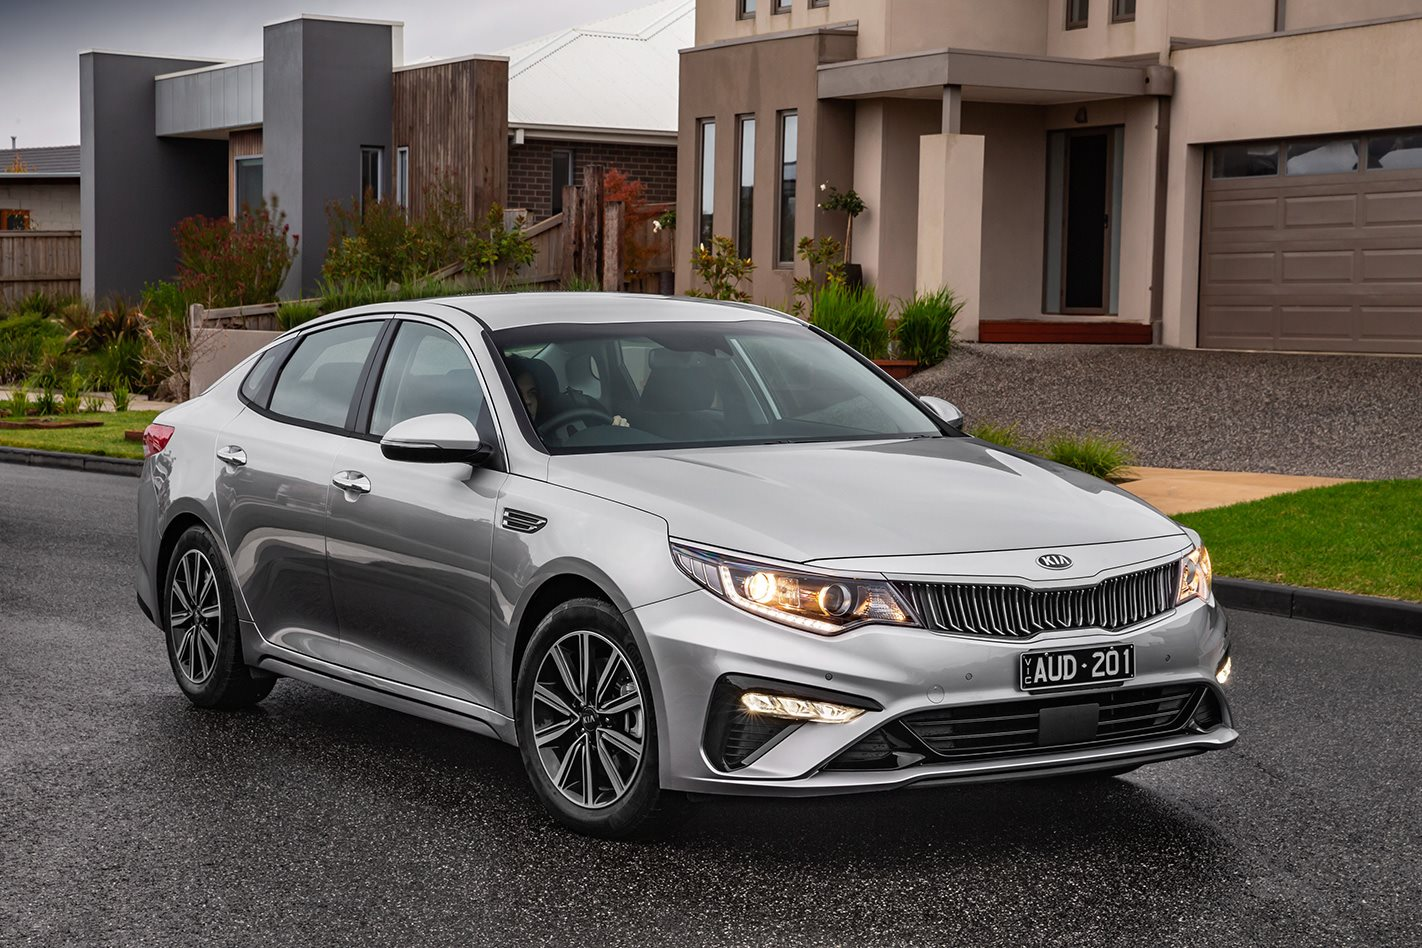 2019 Kia Optima Pricing And Features